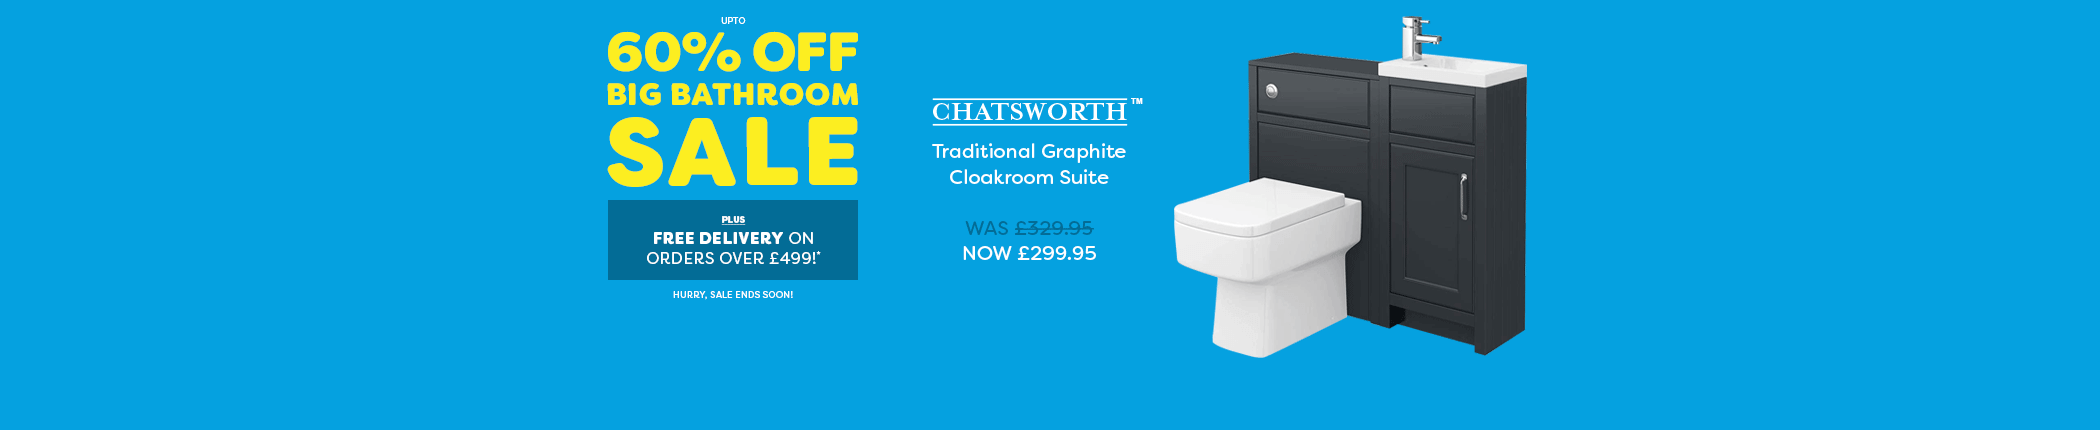 big-bathroom-sale-chatsworth-traditional-graphite-may17-hbnr